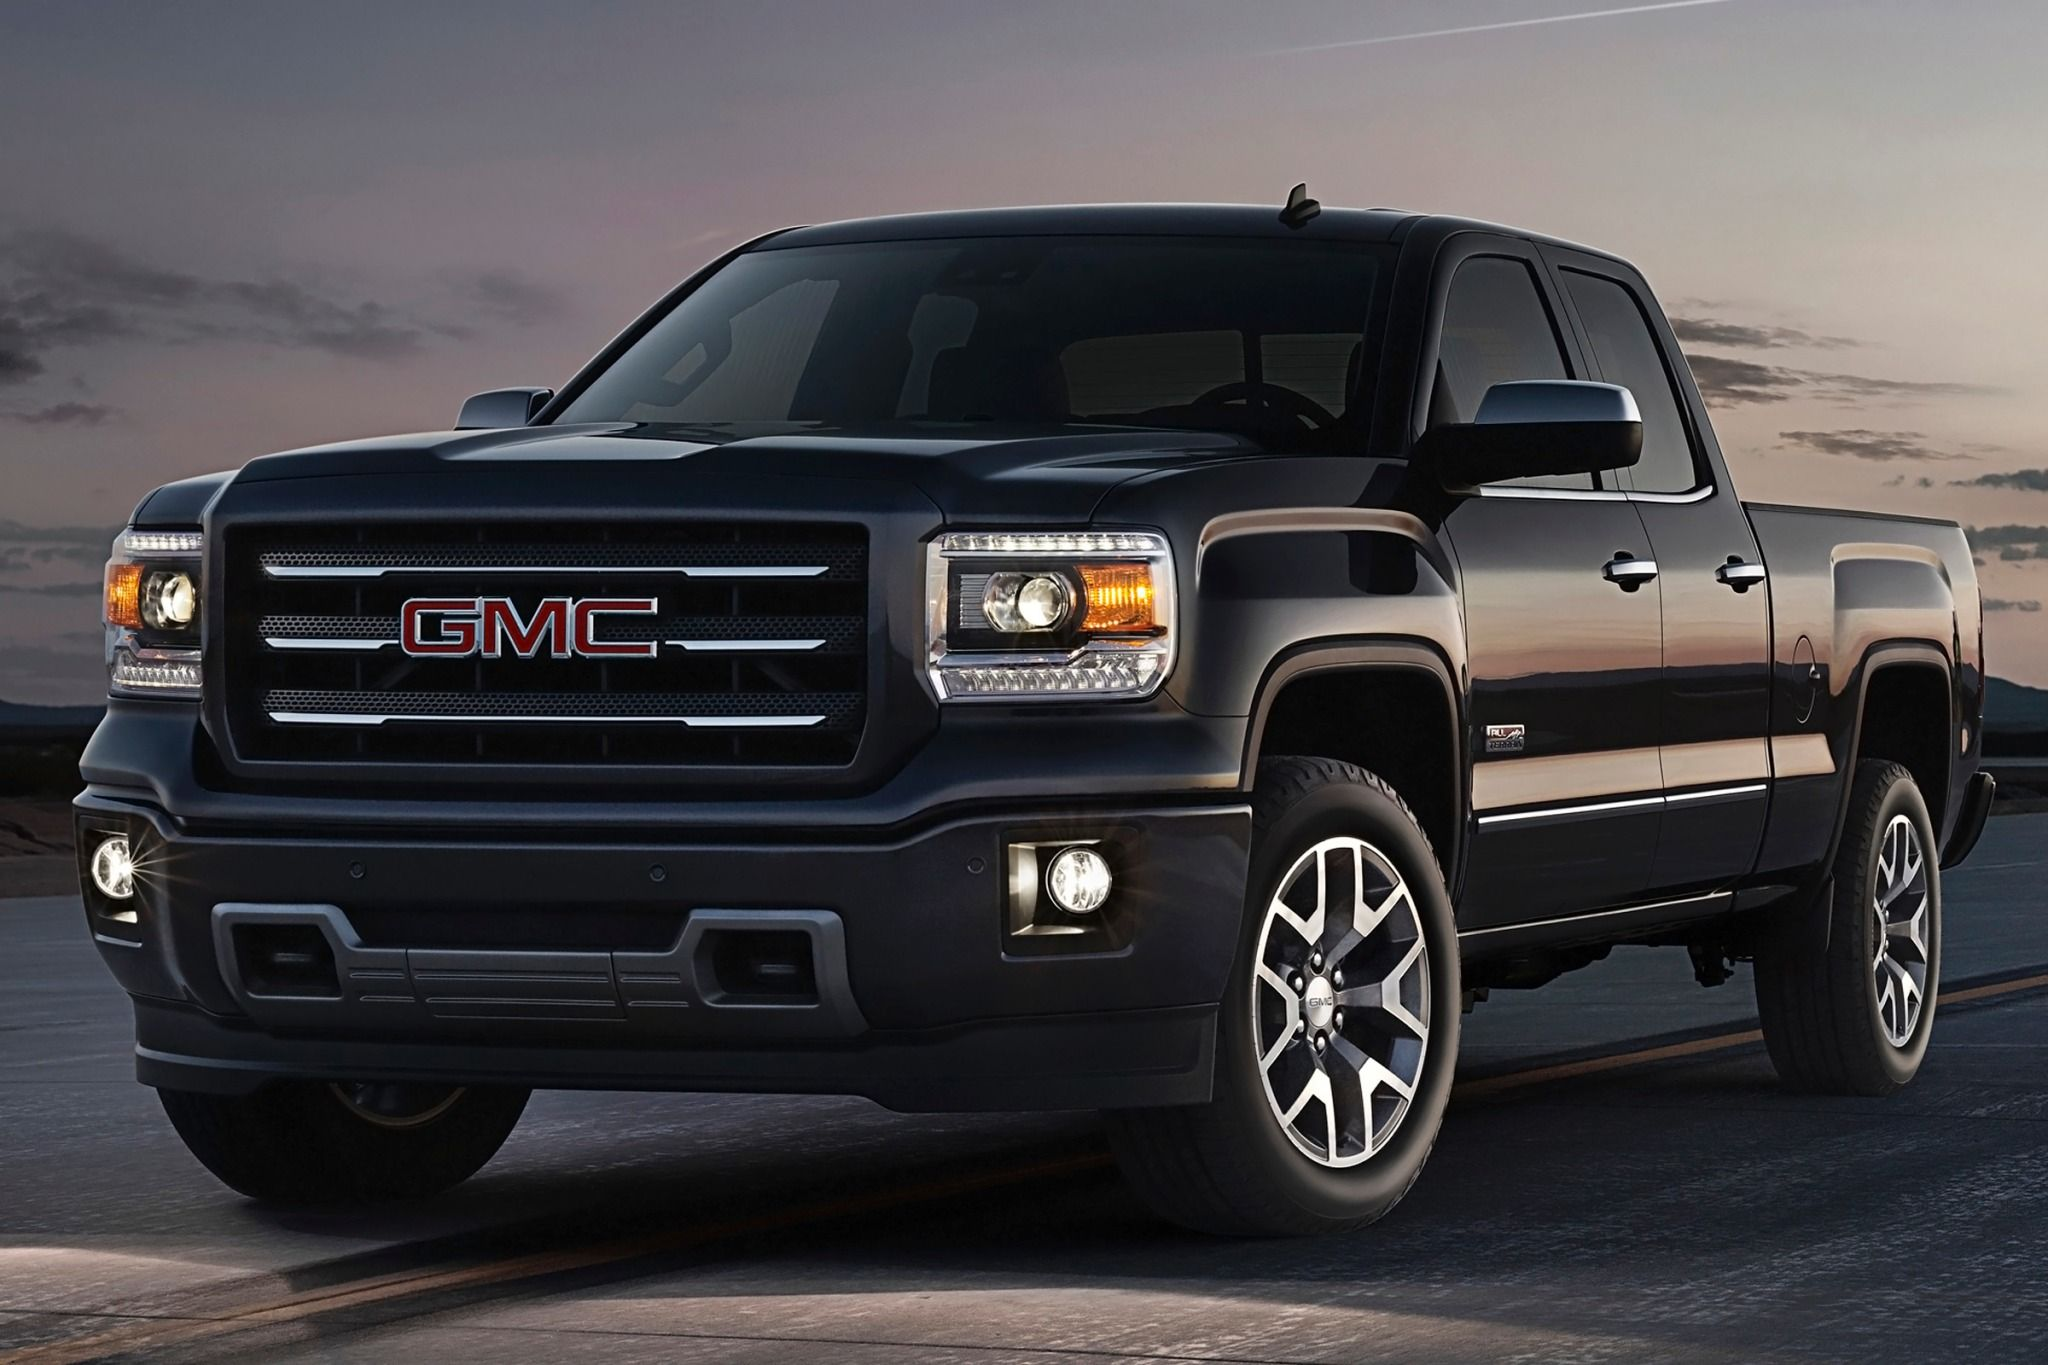 Gmc sierra 2500 the great truck http www designdellautomobile com